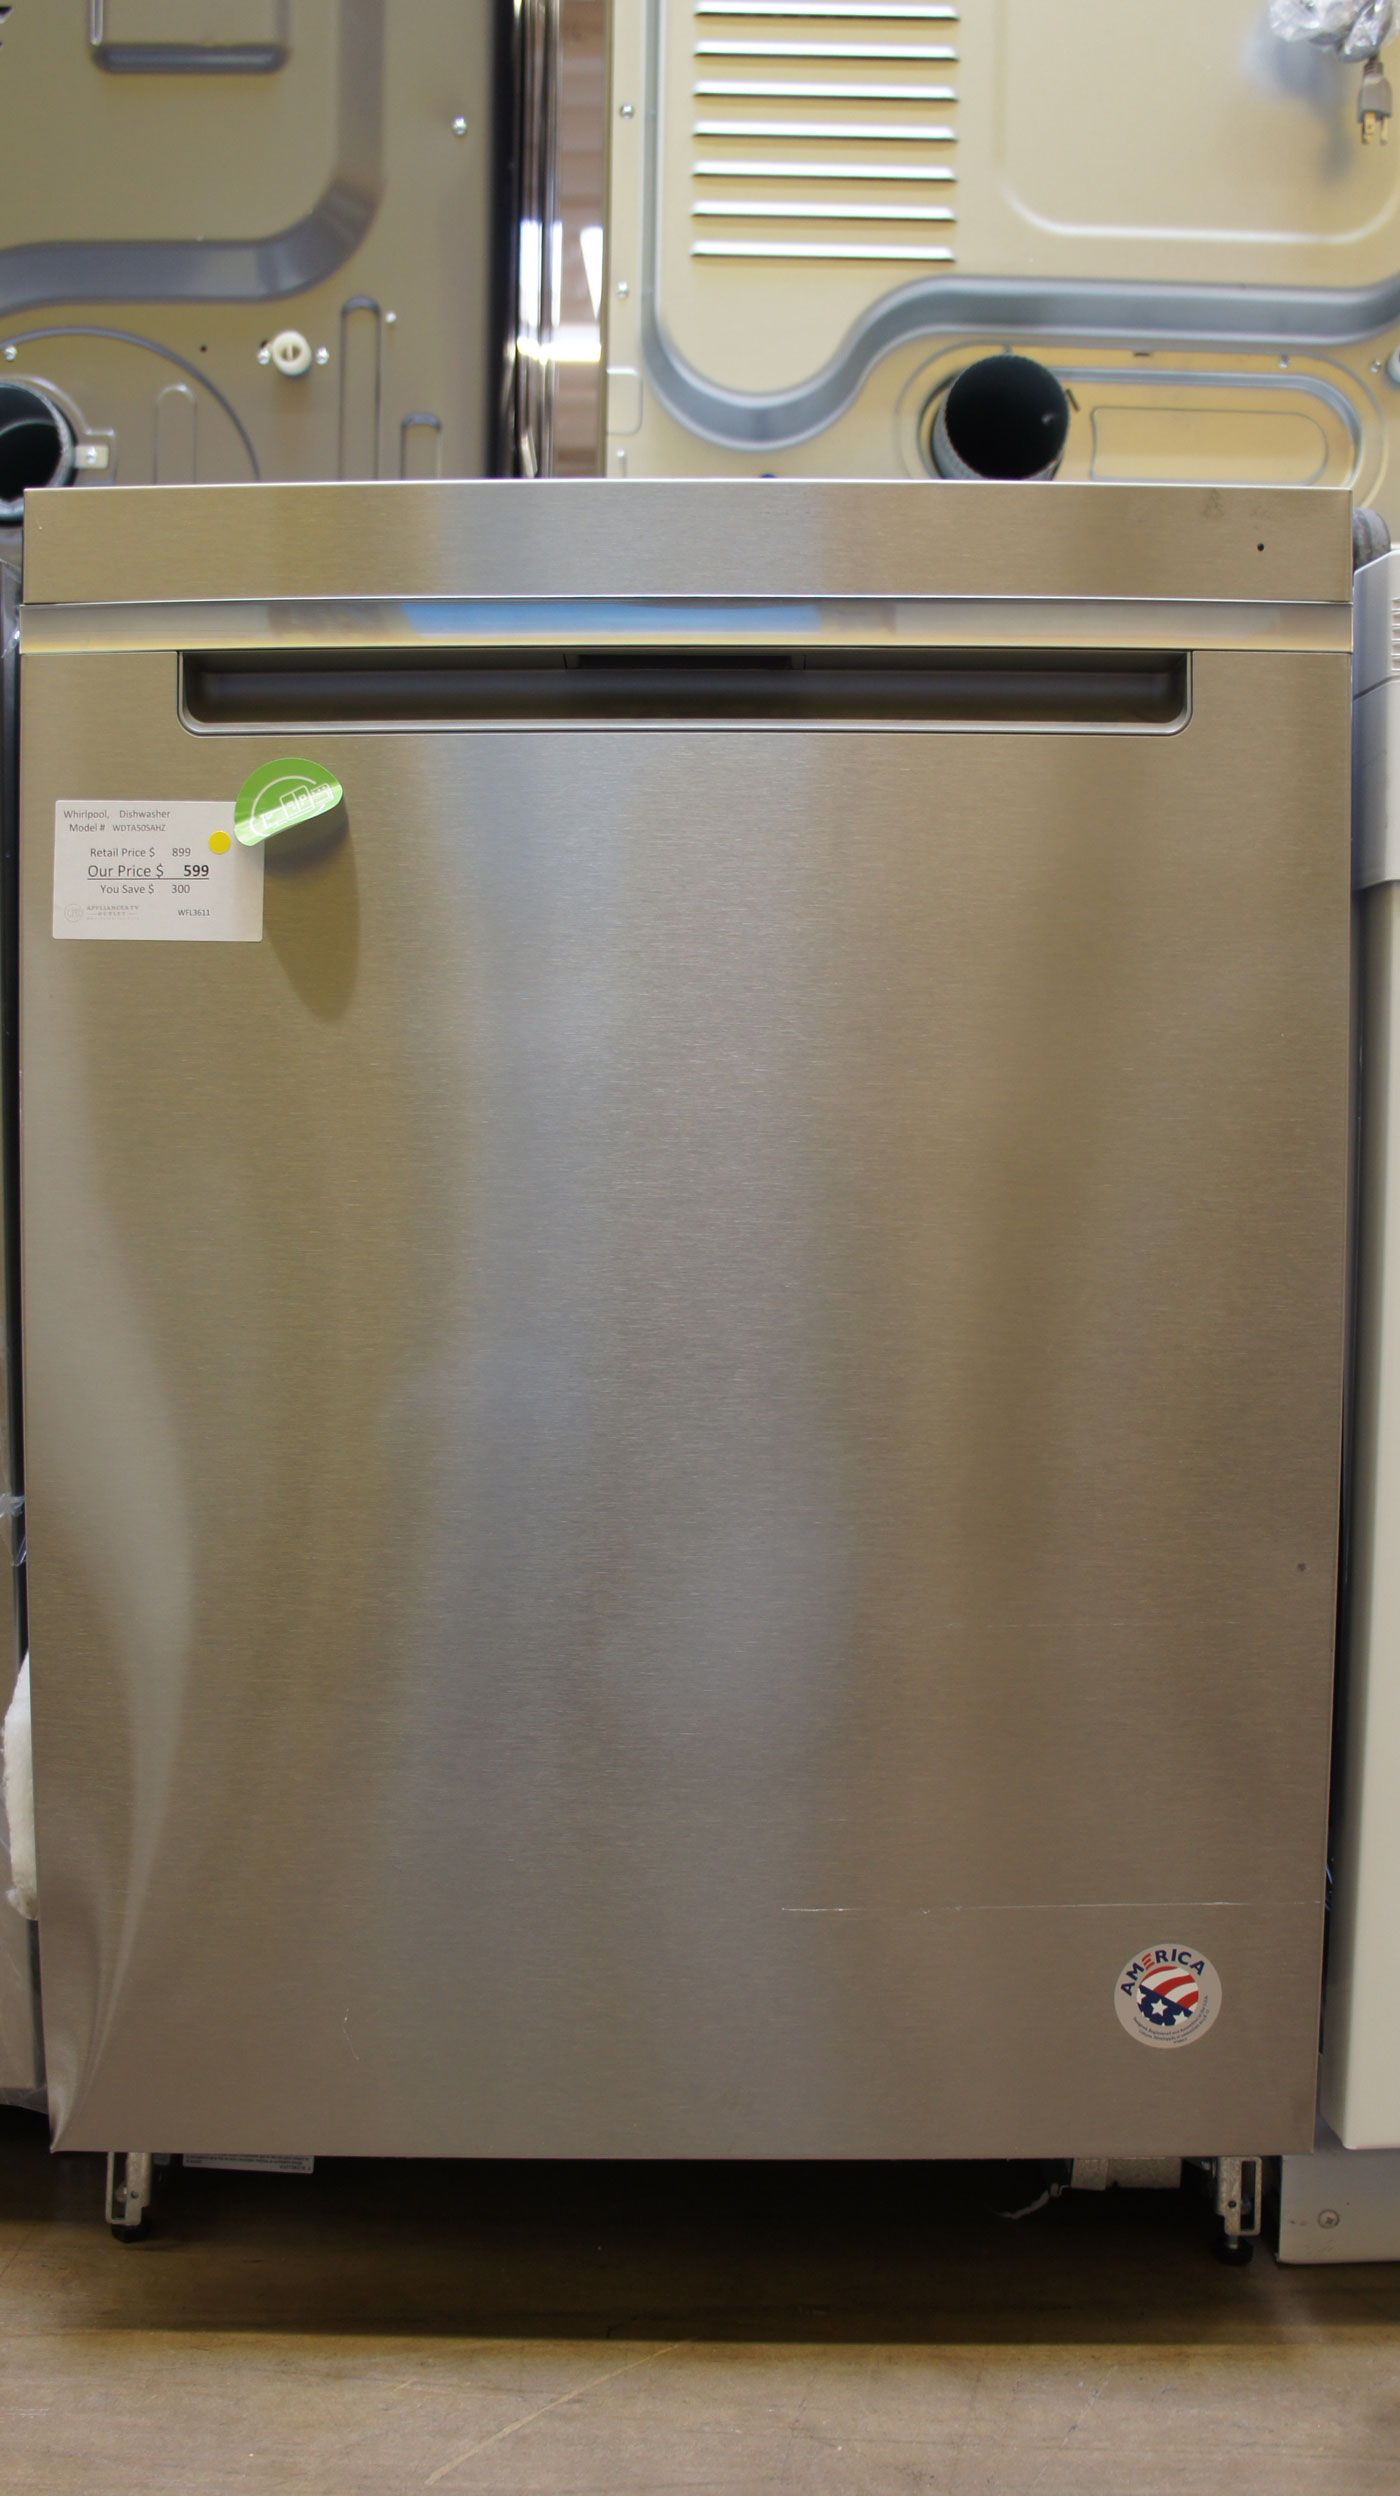 "24"" Whirlpool WDTA50SAHZ Dishwasher"